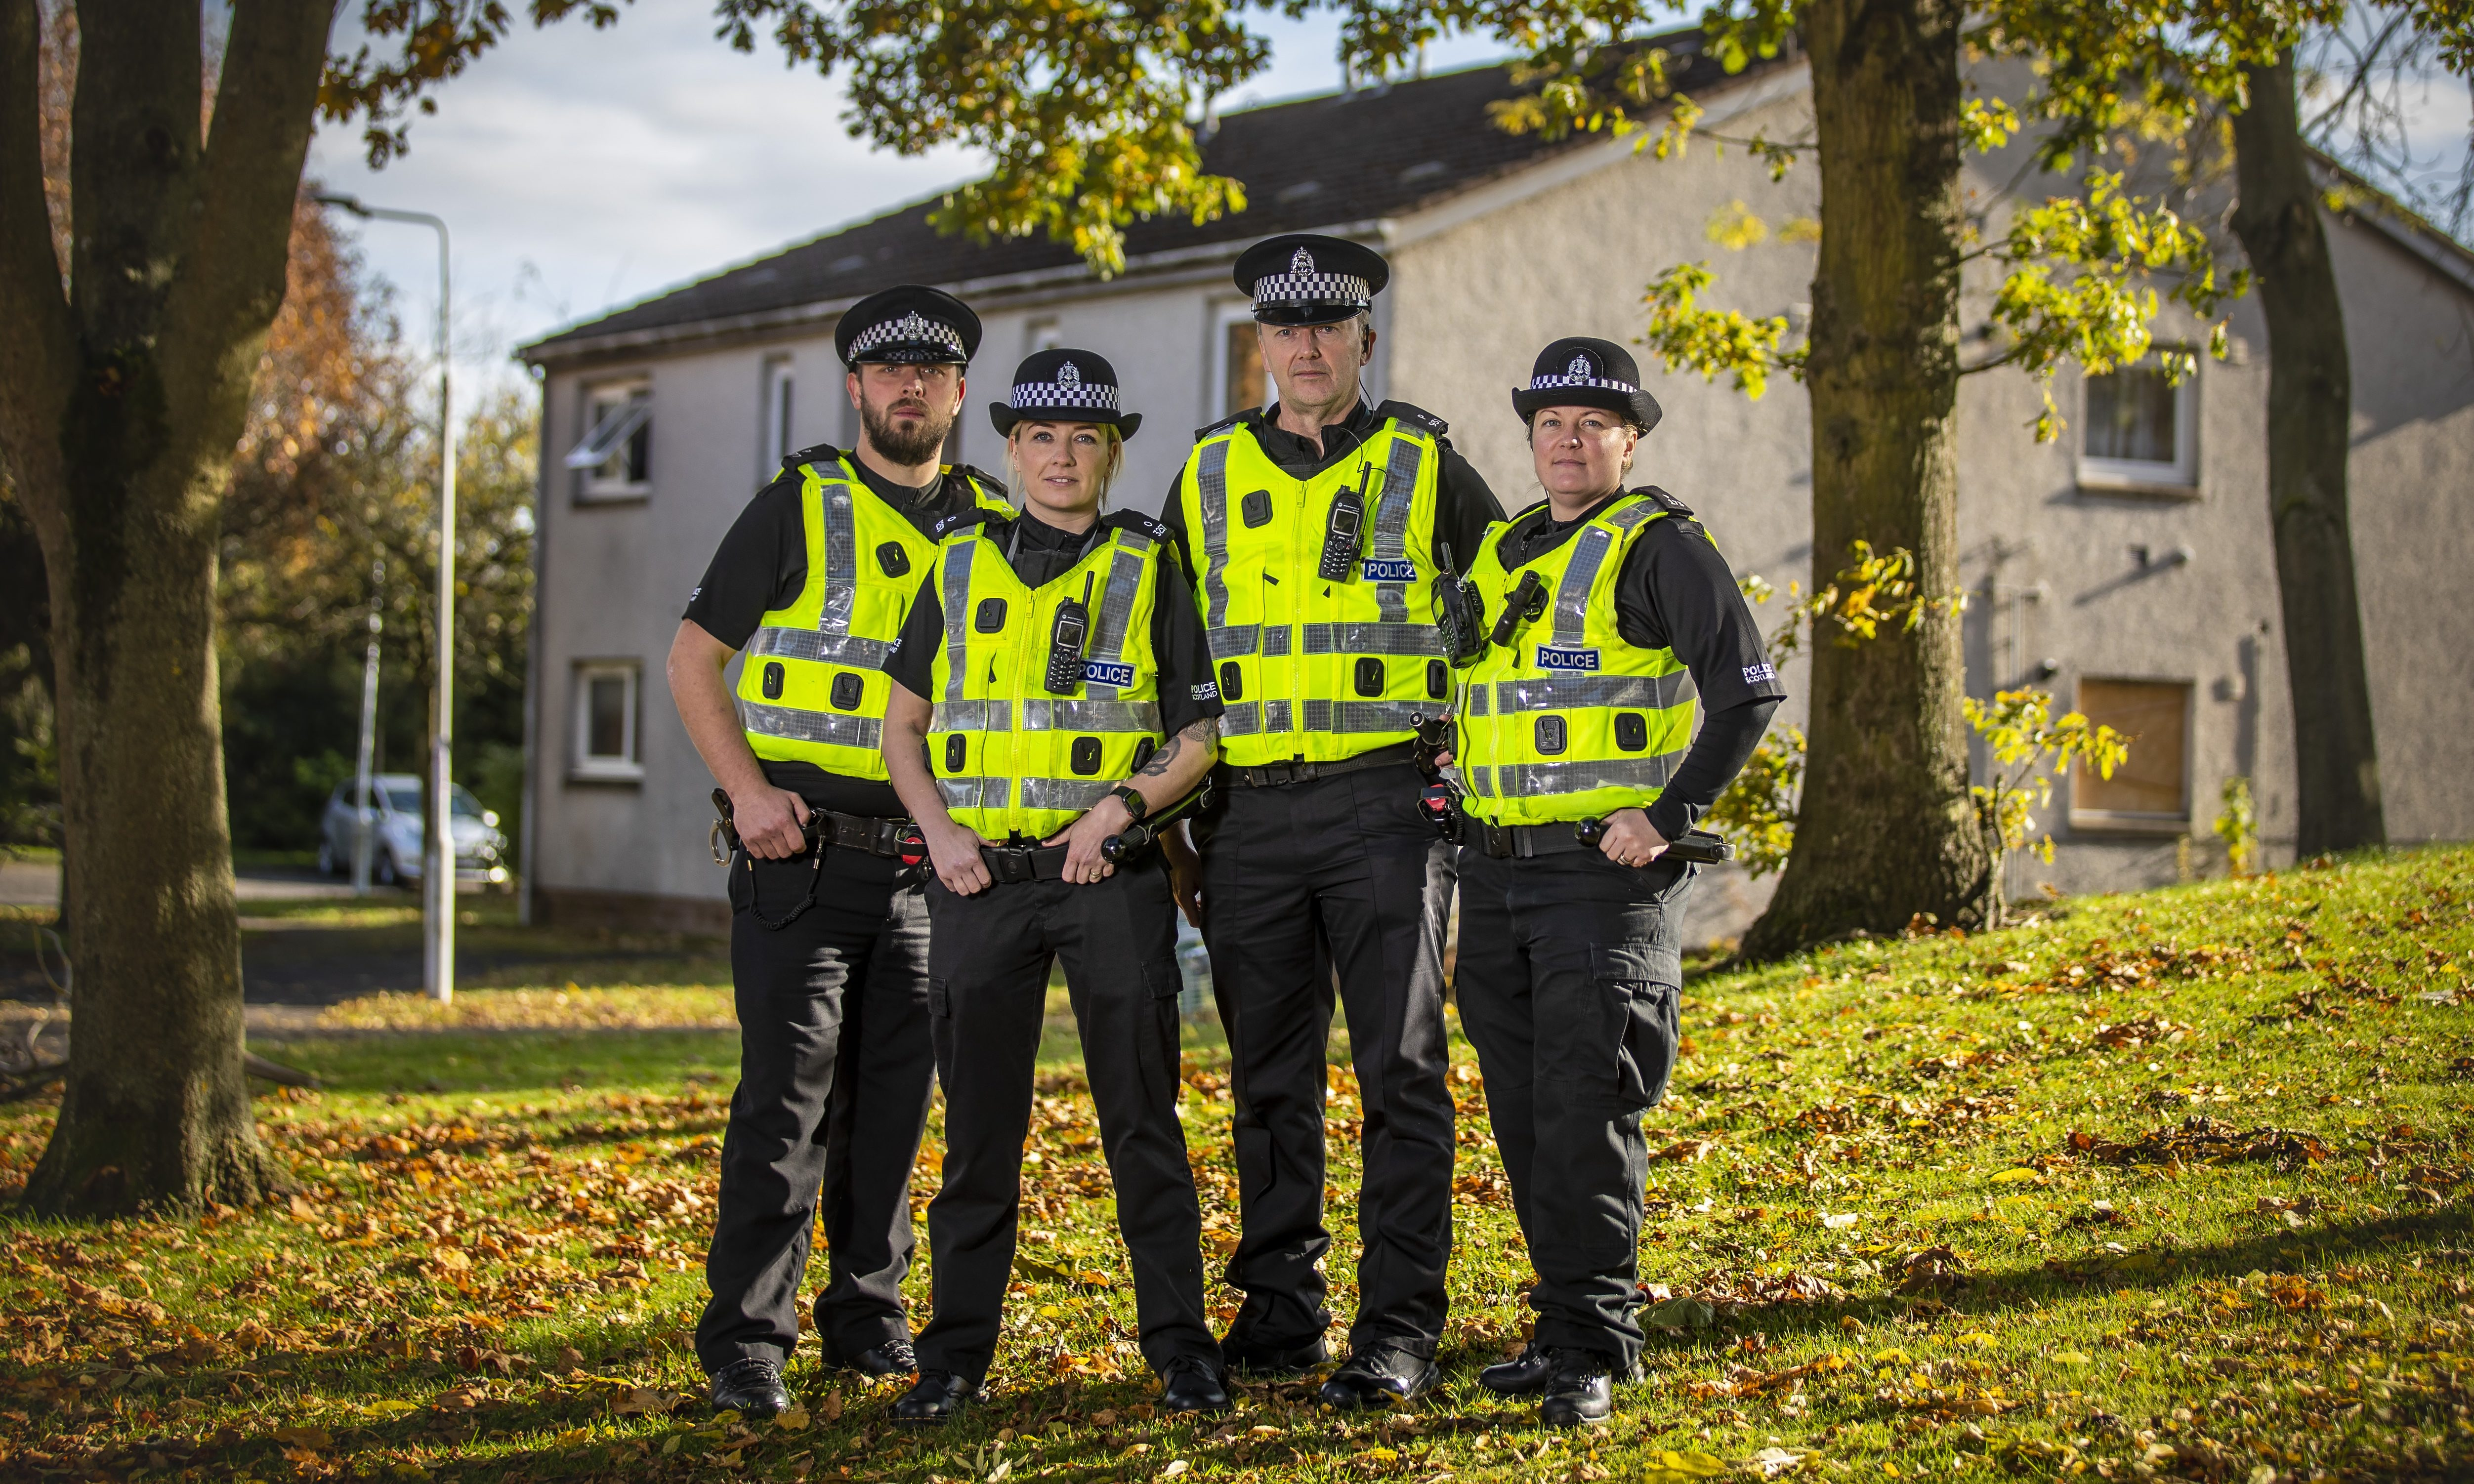 Constables Paul Stather, Sarah Hay, Andrew Gillies and Ashliegh Archer. Picture by Andrew Barr Photography.